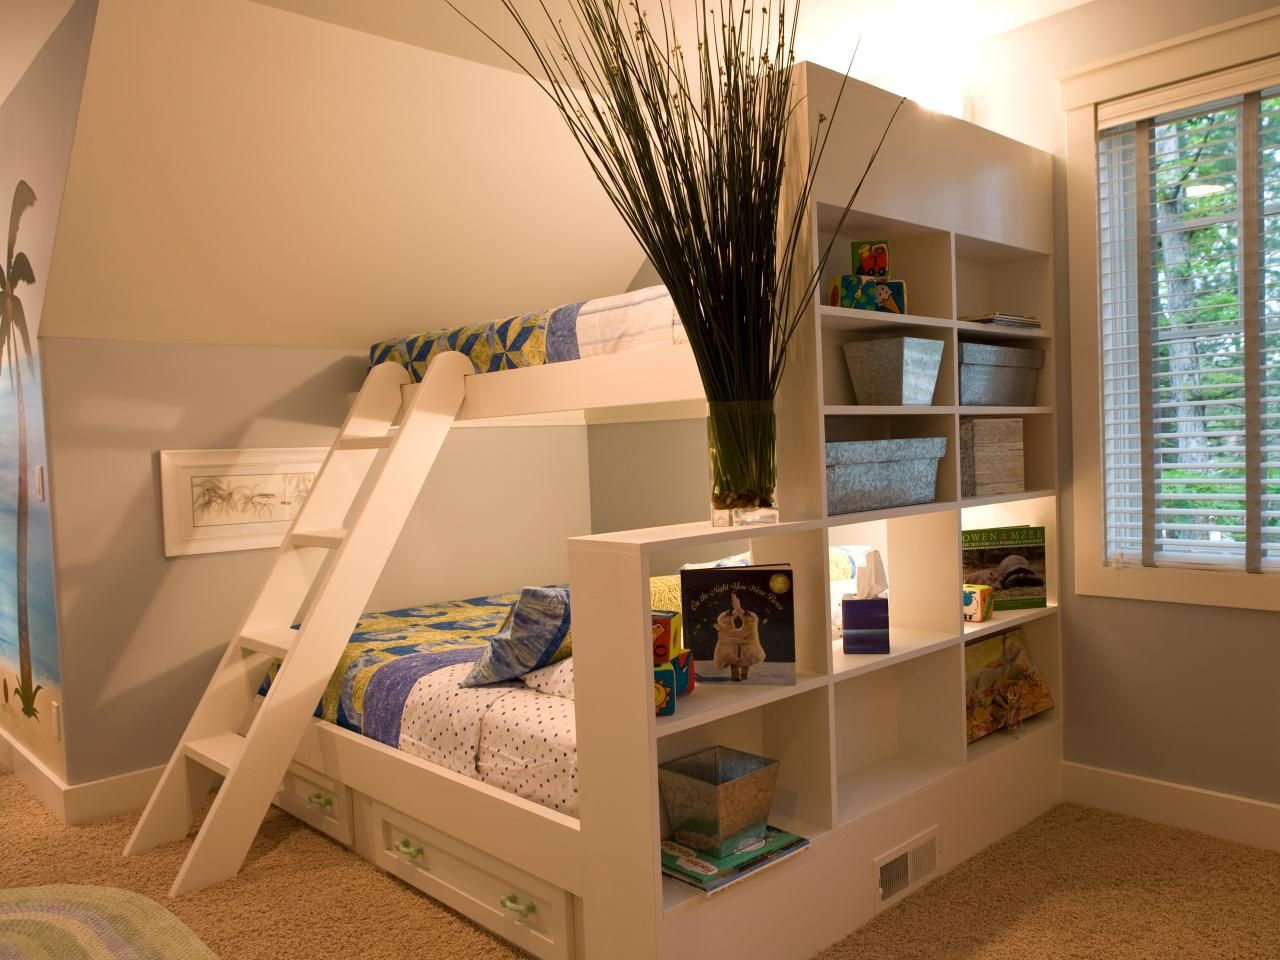 100 bunk beds ideas cute children bunk beds children bunk b